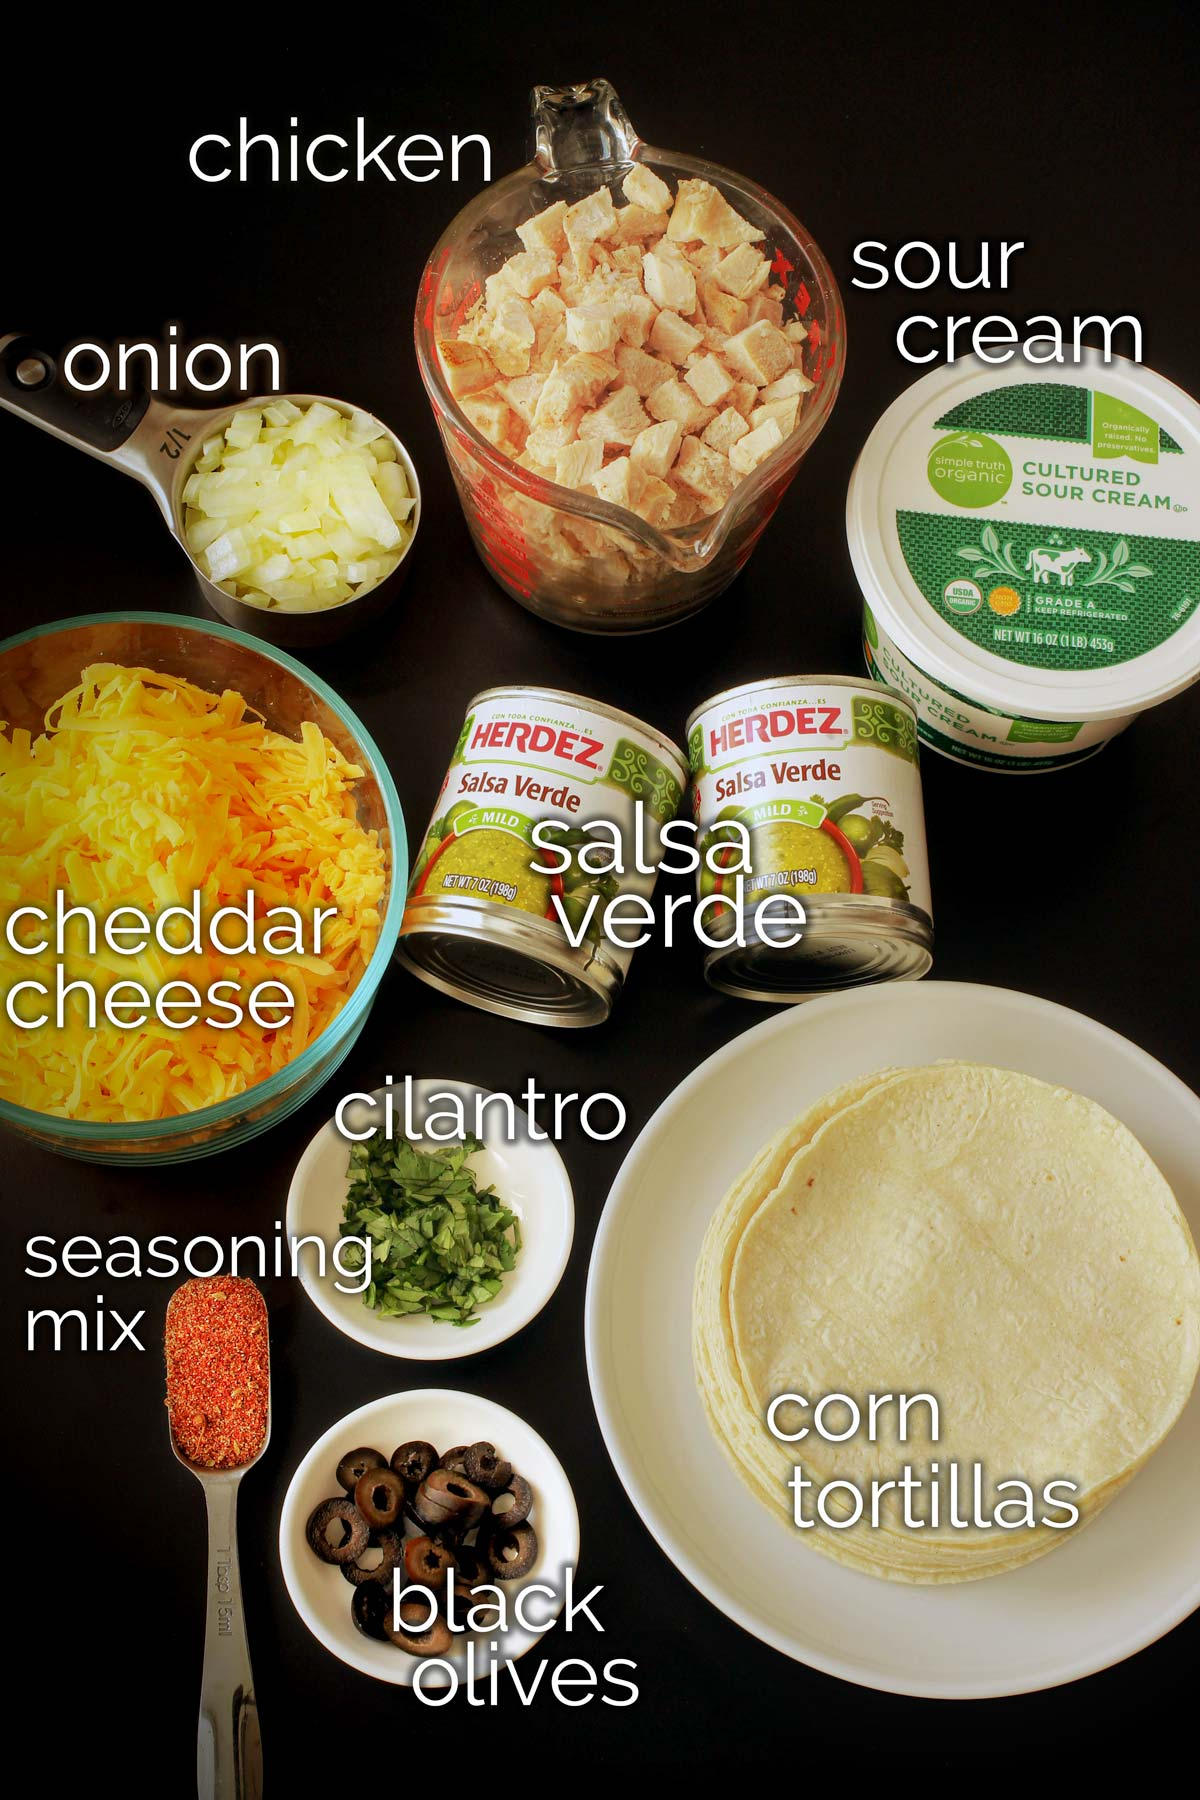 ingredients for sour cream chicken enchilada casserole laid out on the table.